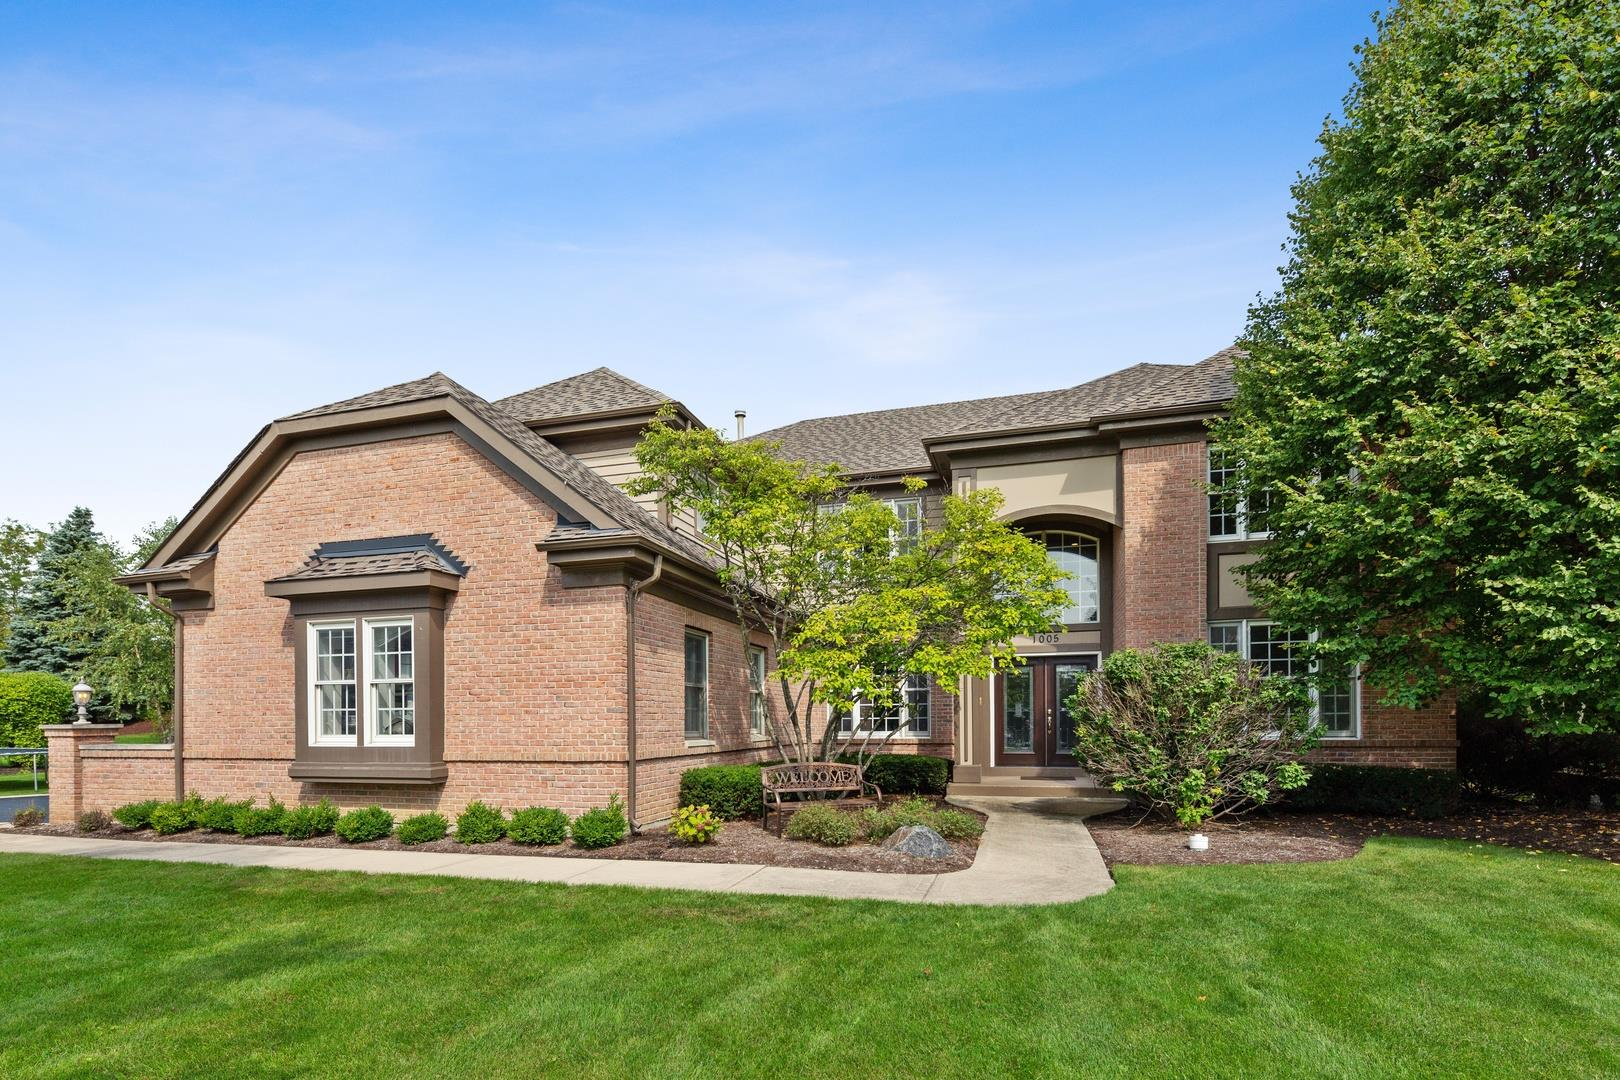 1005 Marble Court, Lake In The Hills, IL 60156 - #: 10574017